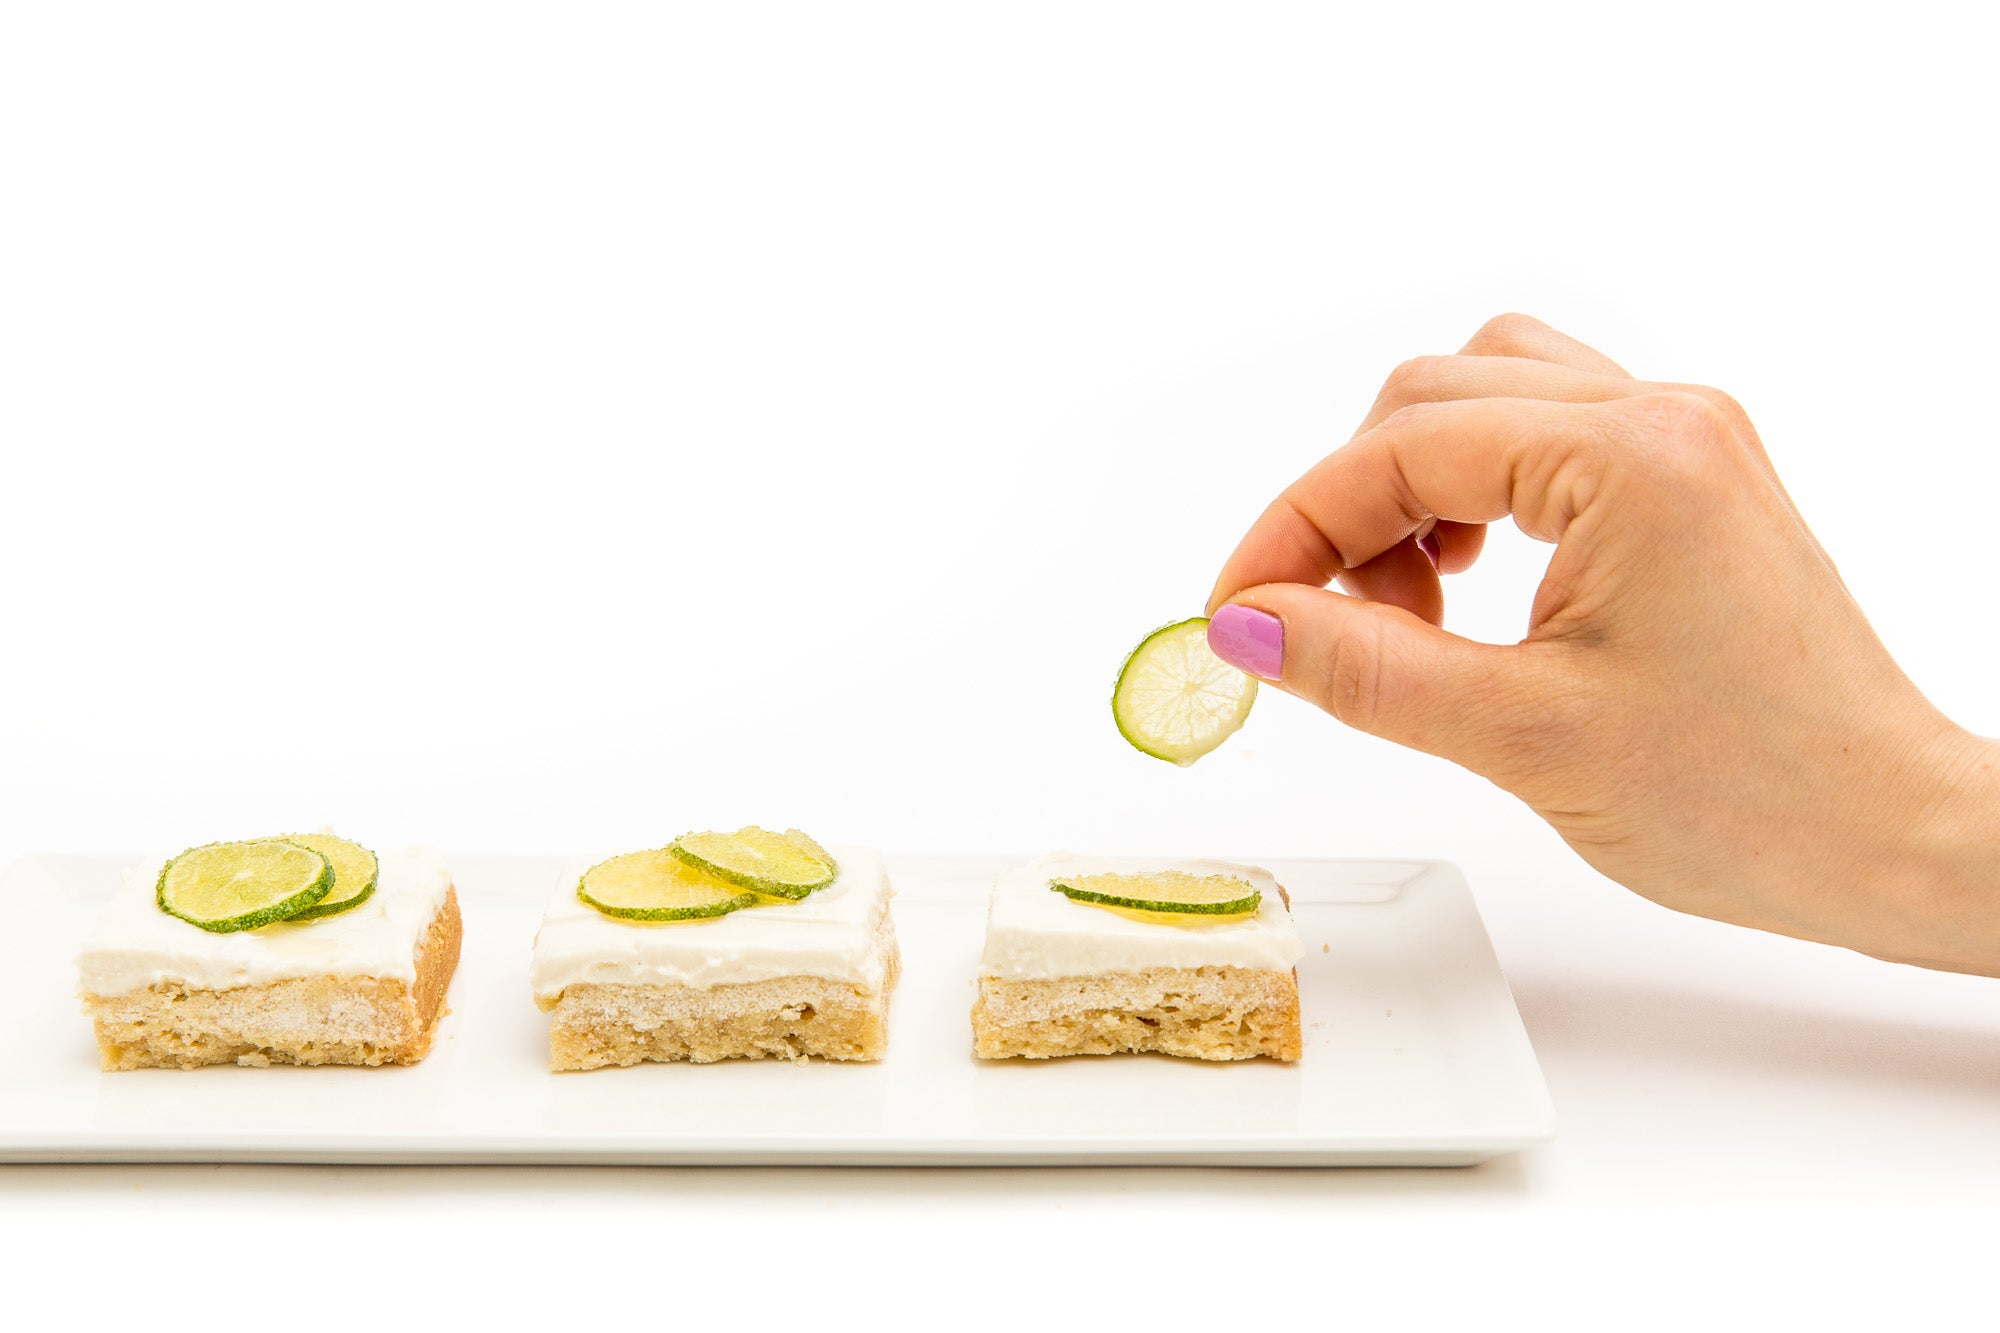 Image from the side of a hand putting baked lime slices on three Miss Jones Baking Co Key Lime Margarita Bars on a plate